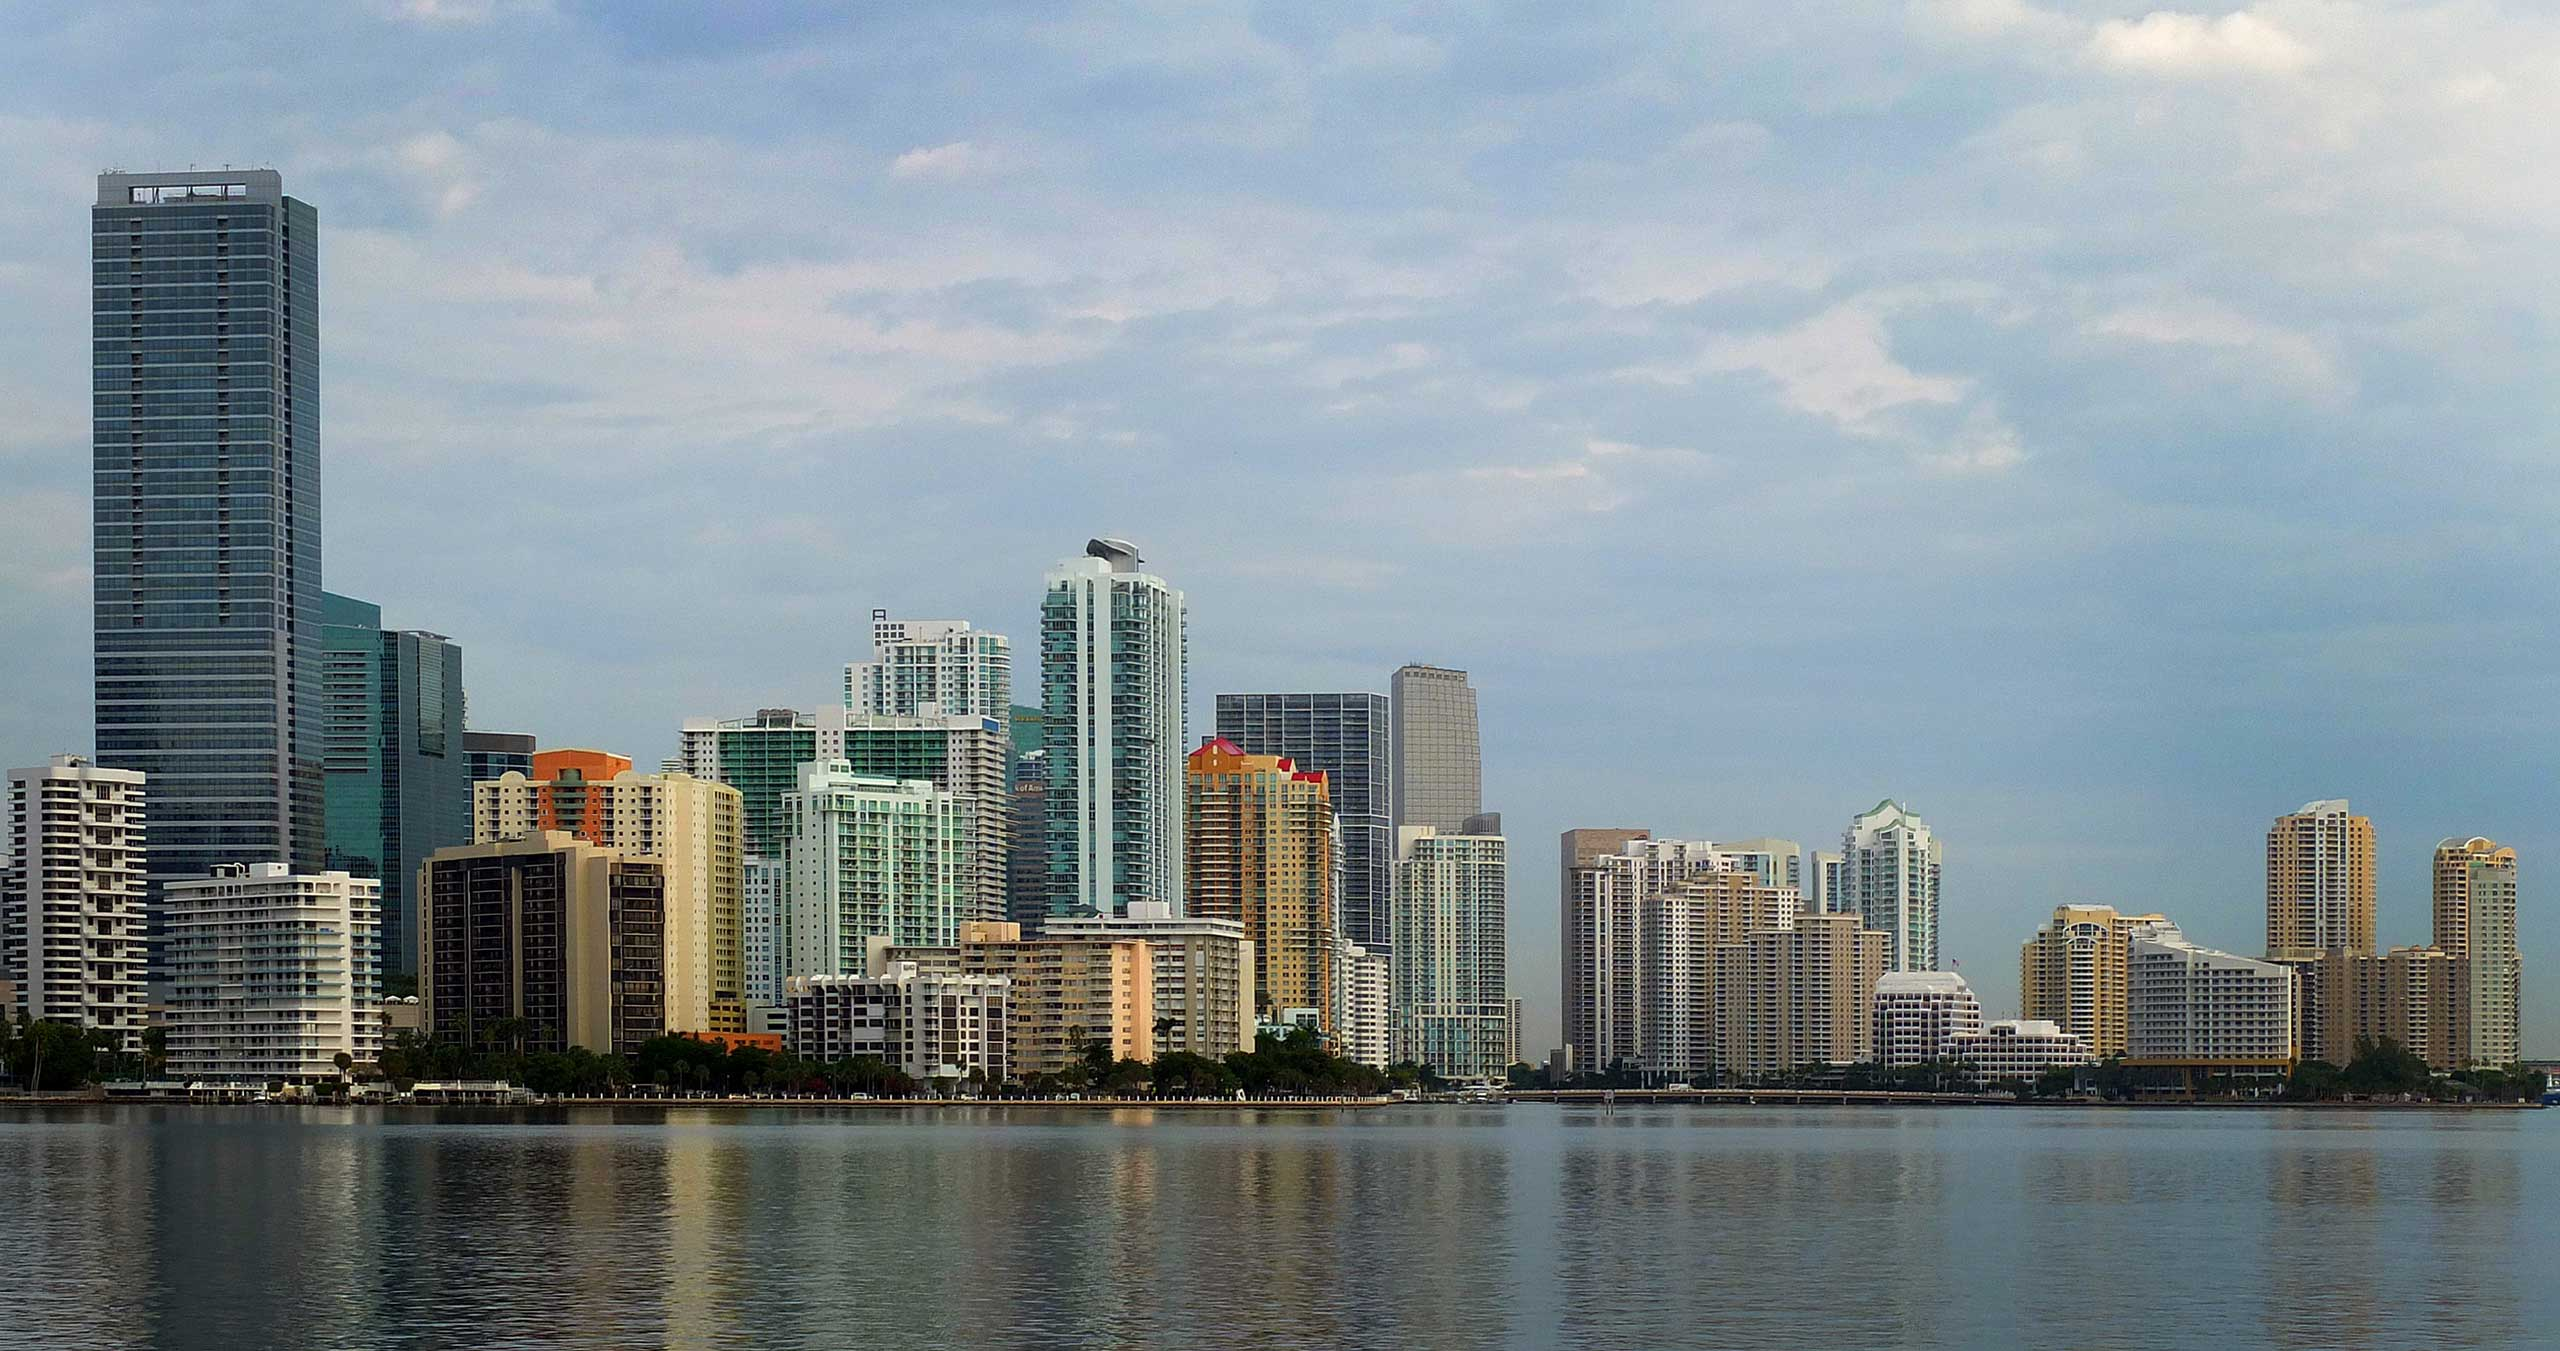 Buidlings stand in the skyline of Miami, Florida,